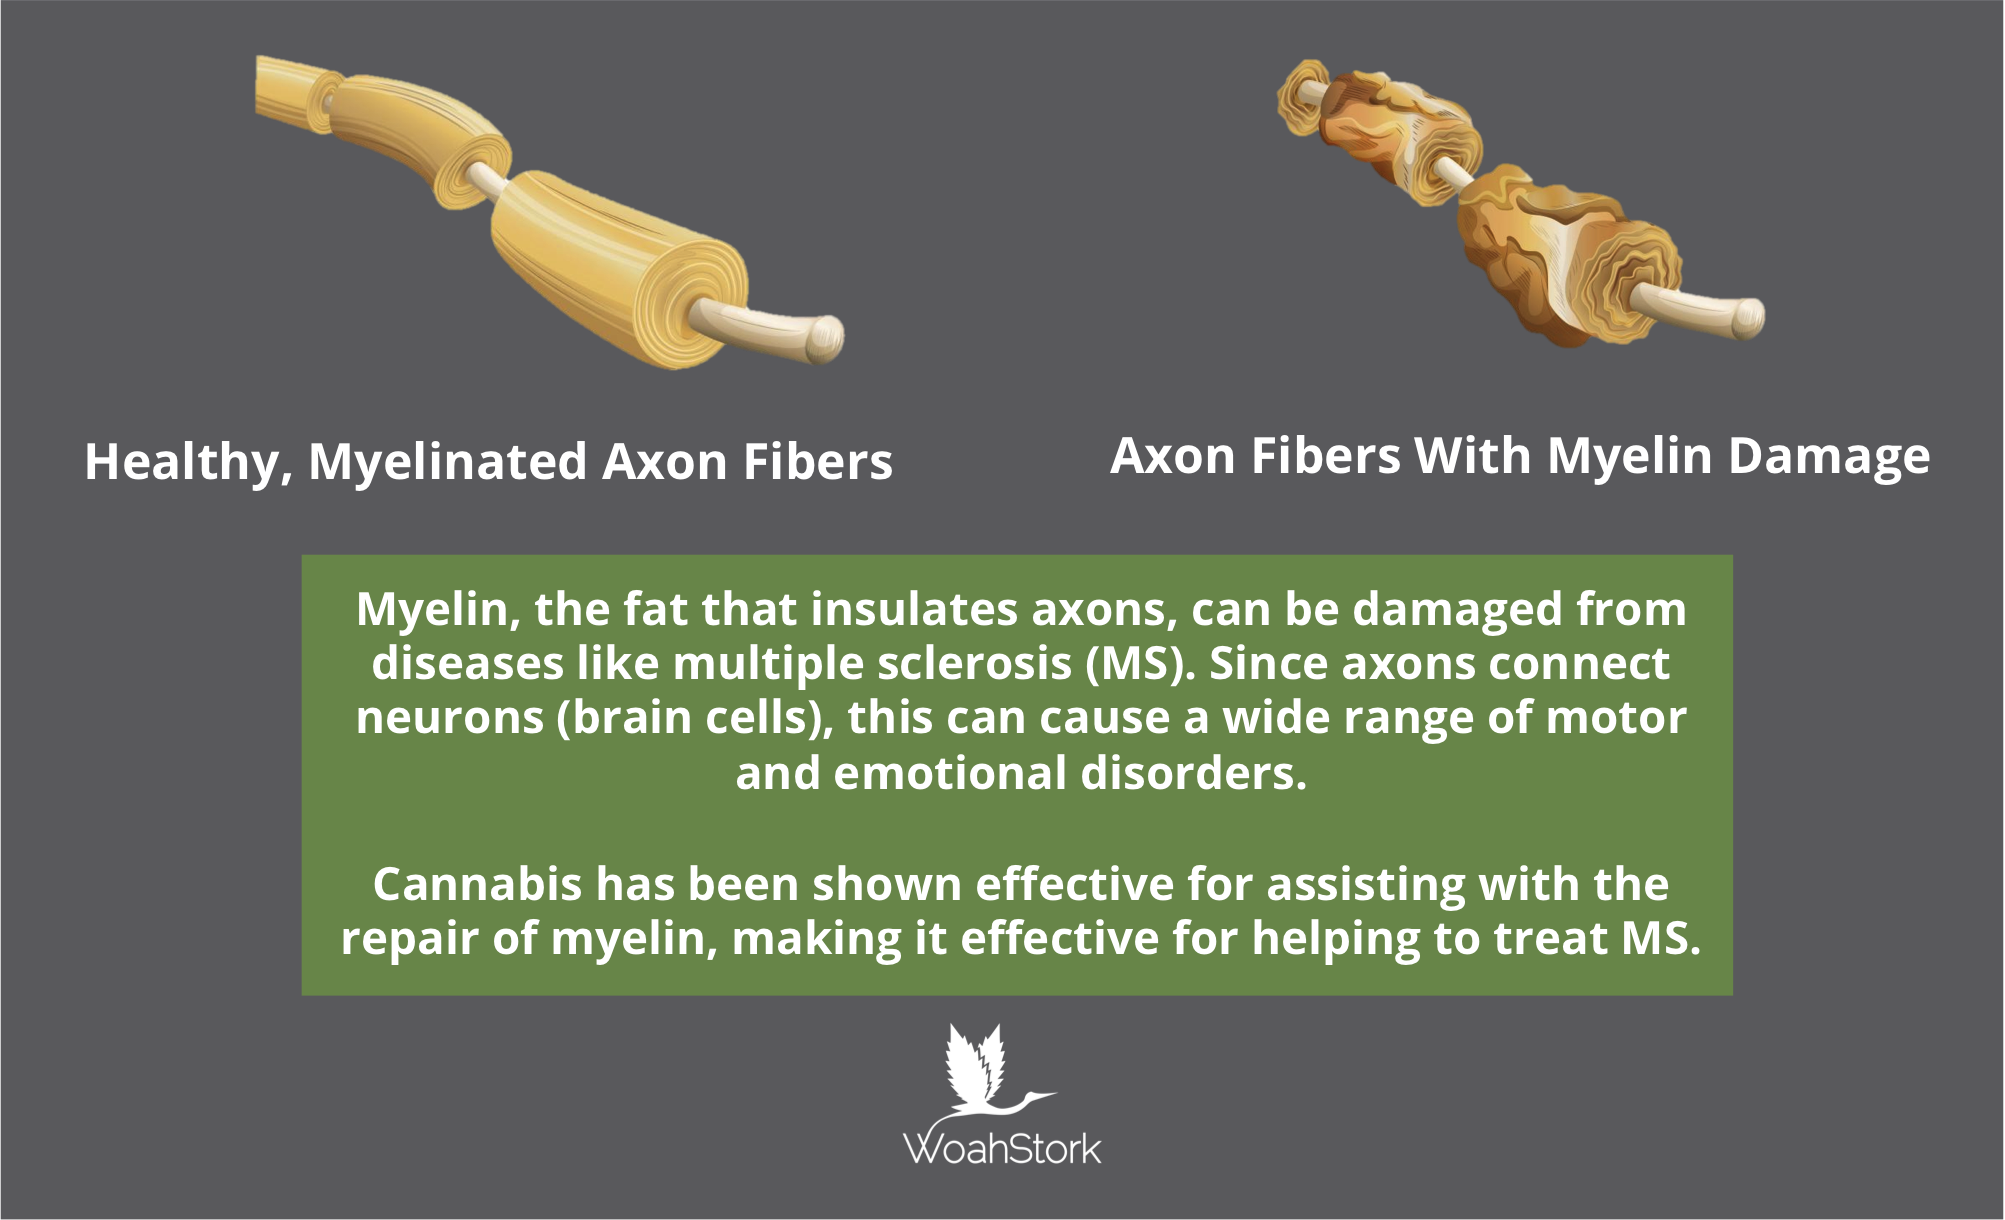 Sativex for axons with damaged myelin